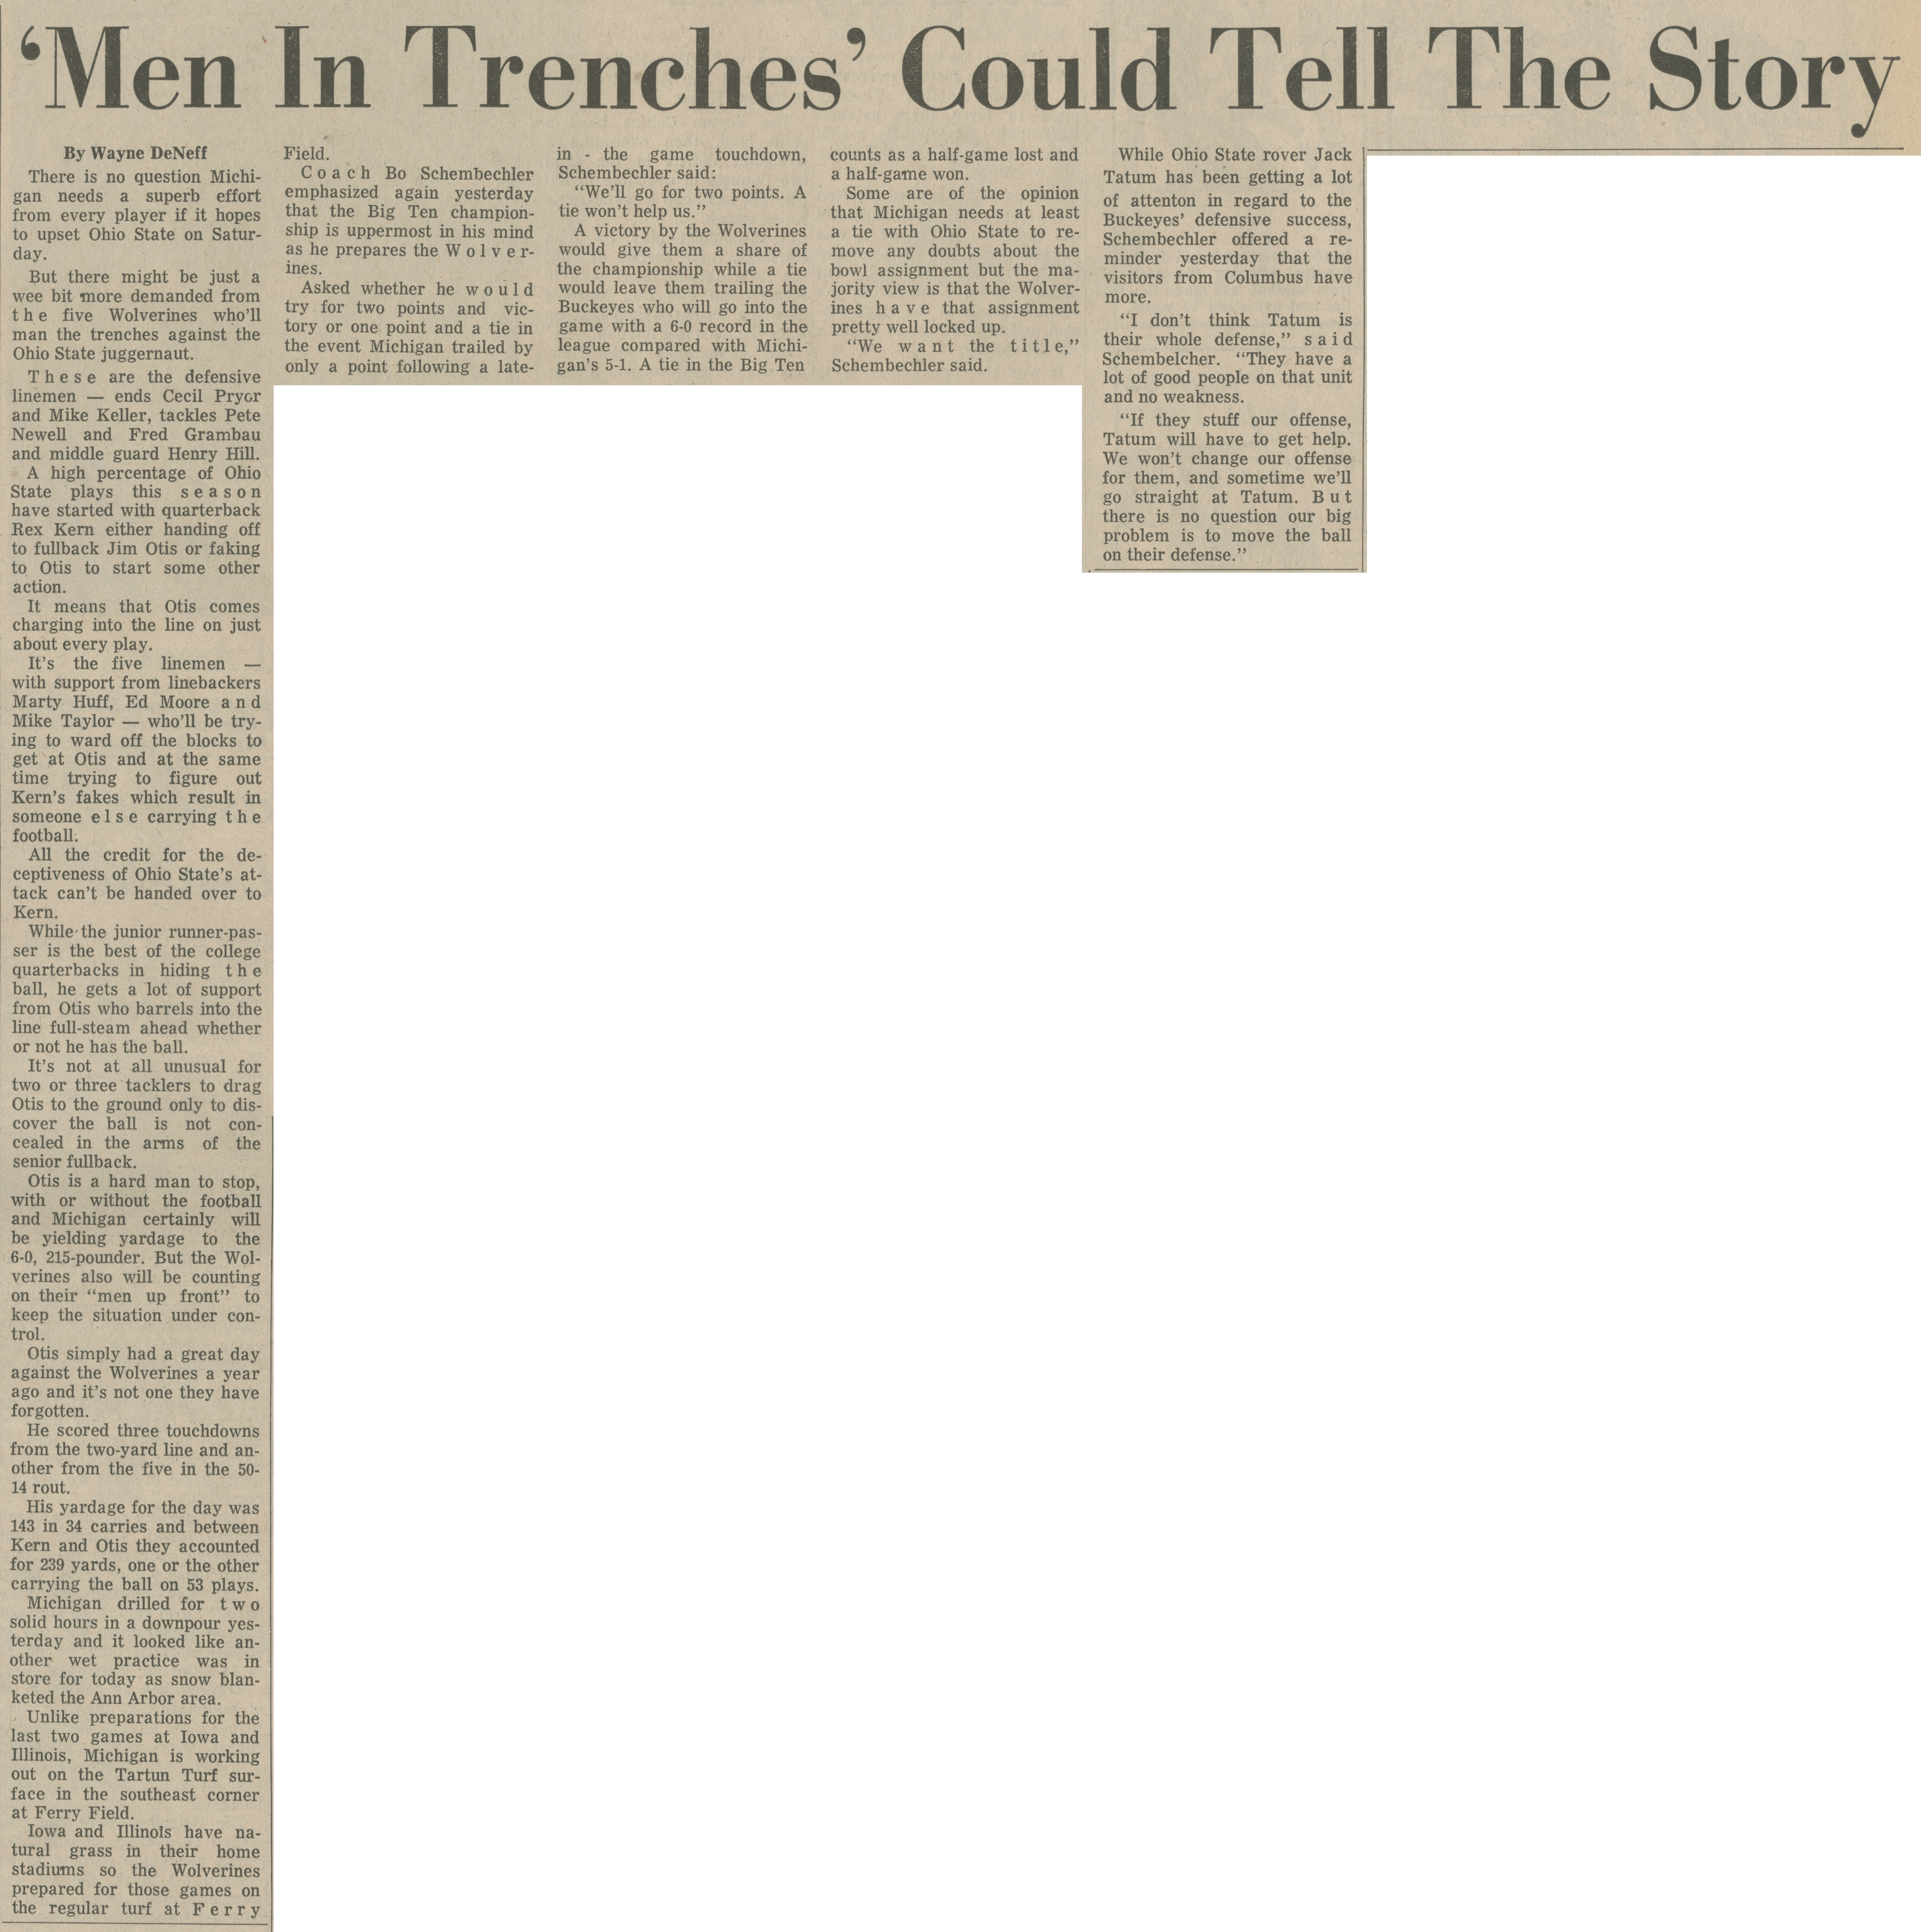 'Men In Trenches' Could Tell The Story image